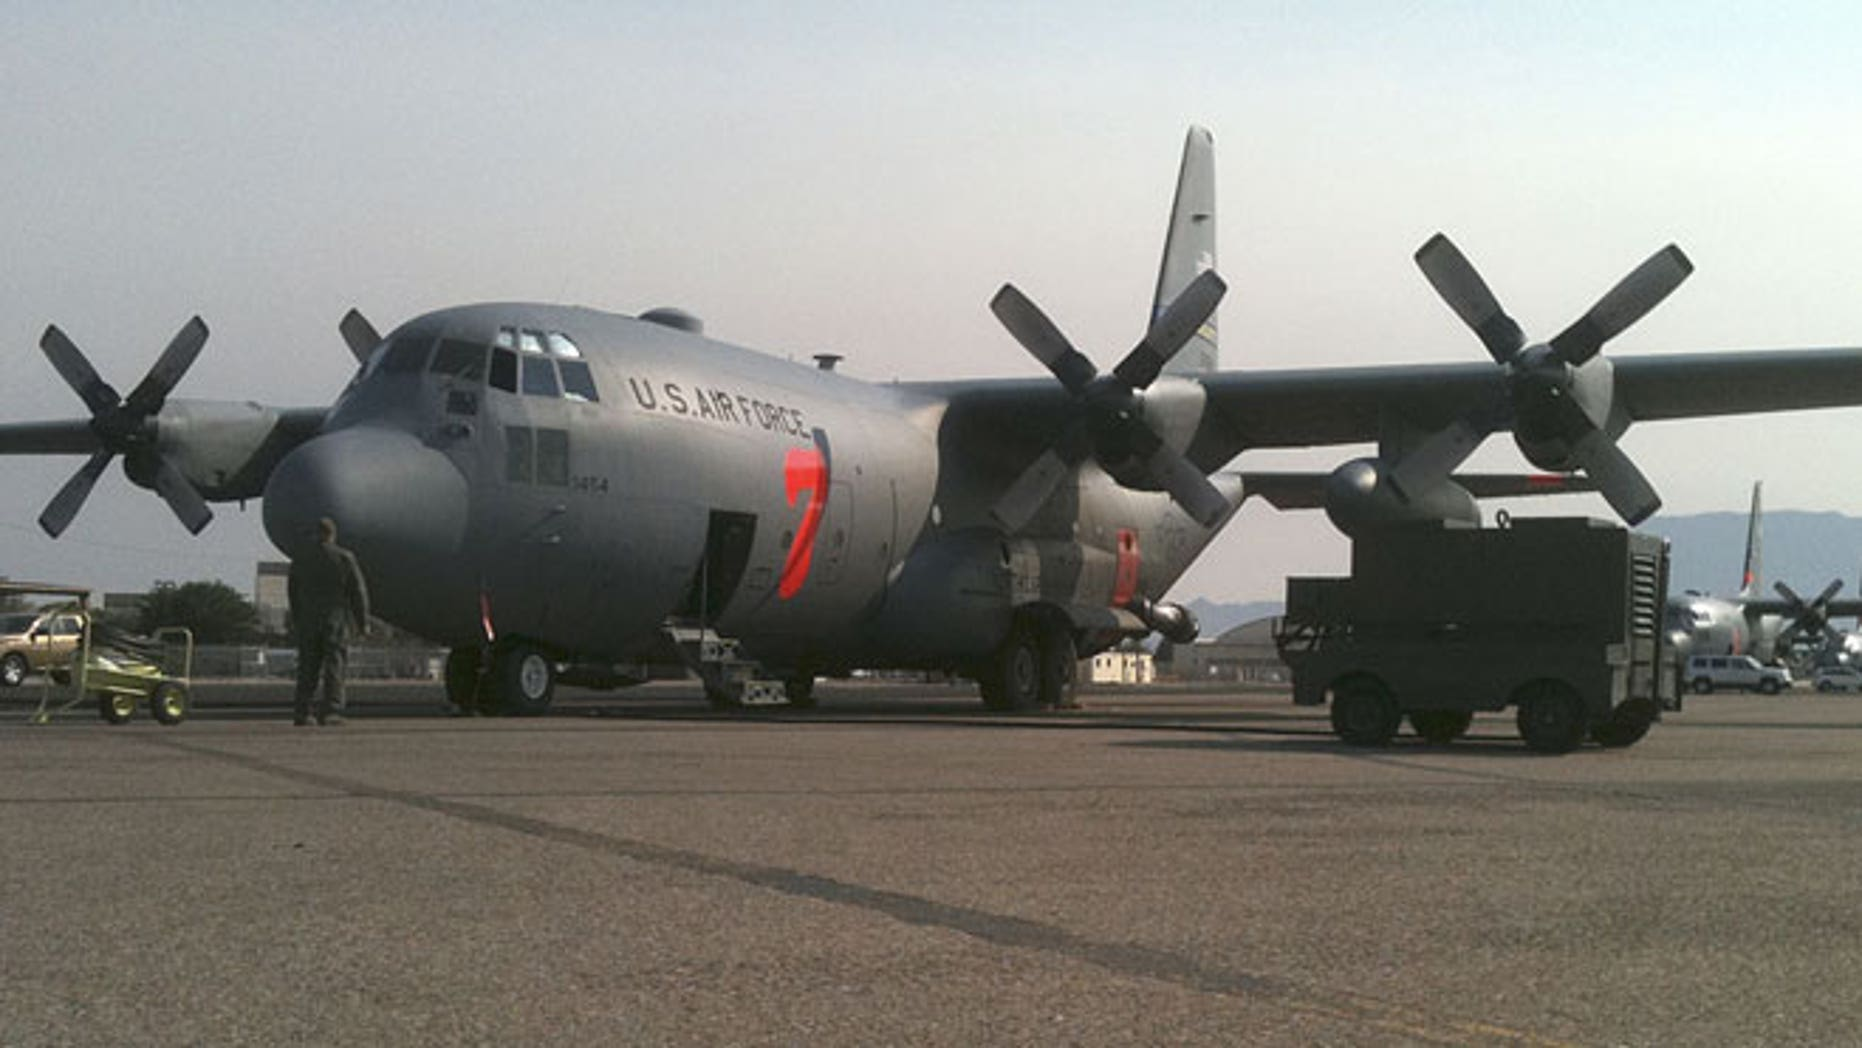 In this July 2, 2011 photo provided by the North Carolina National Guard, a crew prepares a C-130 MAFFS 7 (Modular Airborne FireFighting System) cargo plane to battle a wildfire, in Albuquerque, New Mexico.